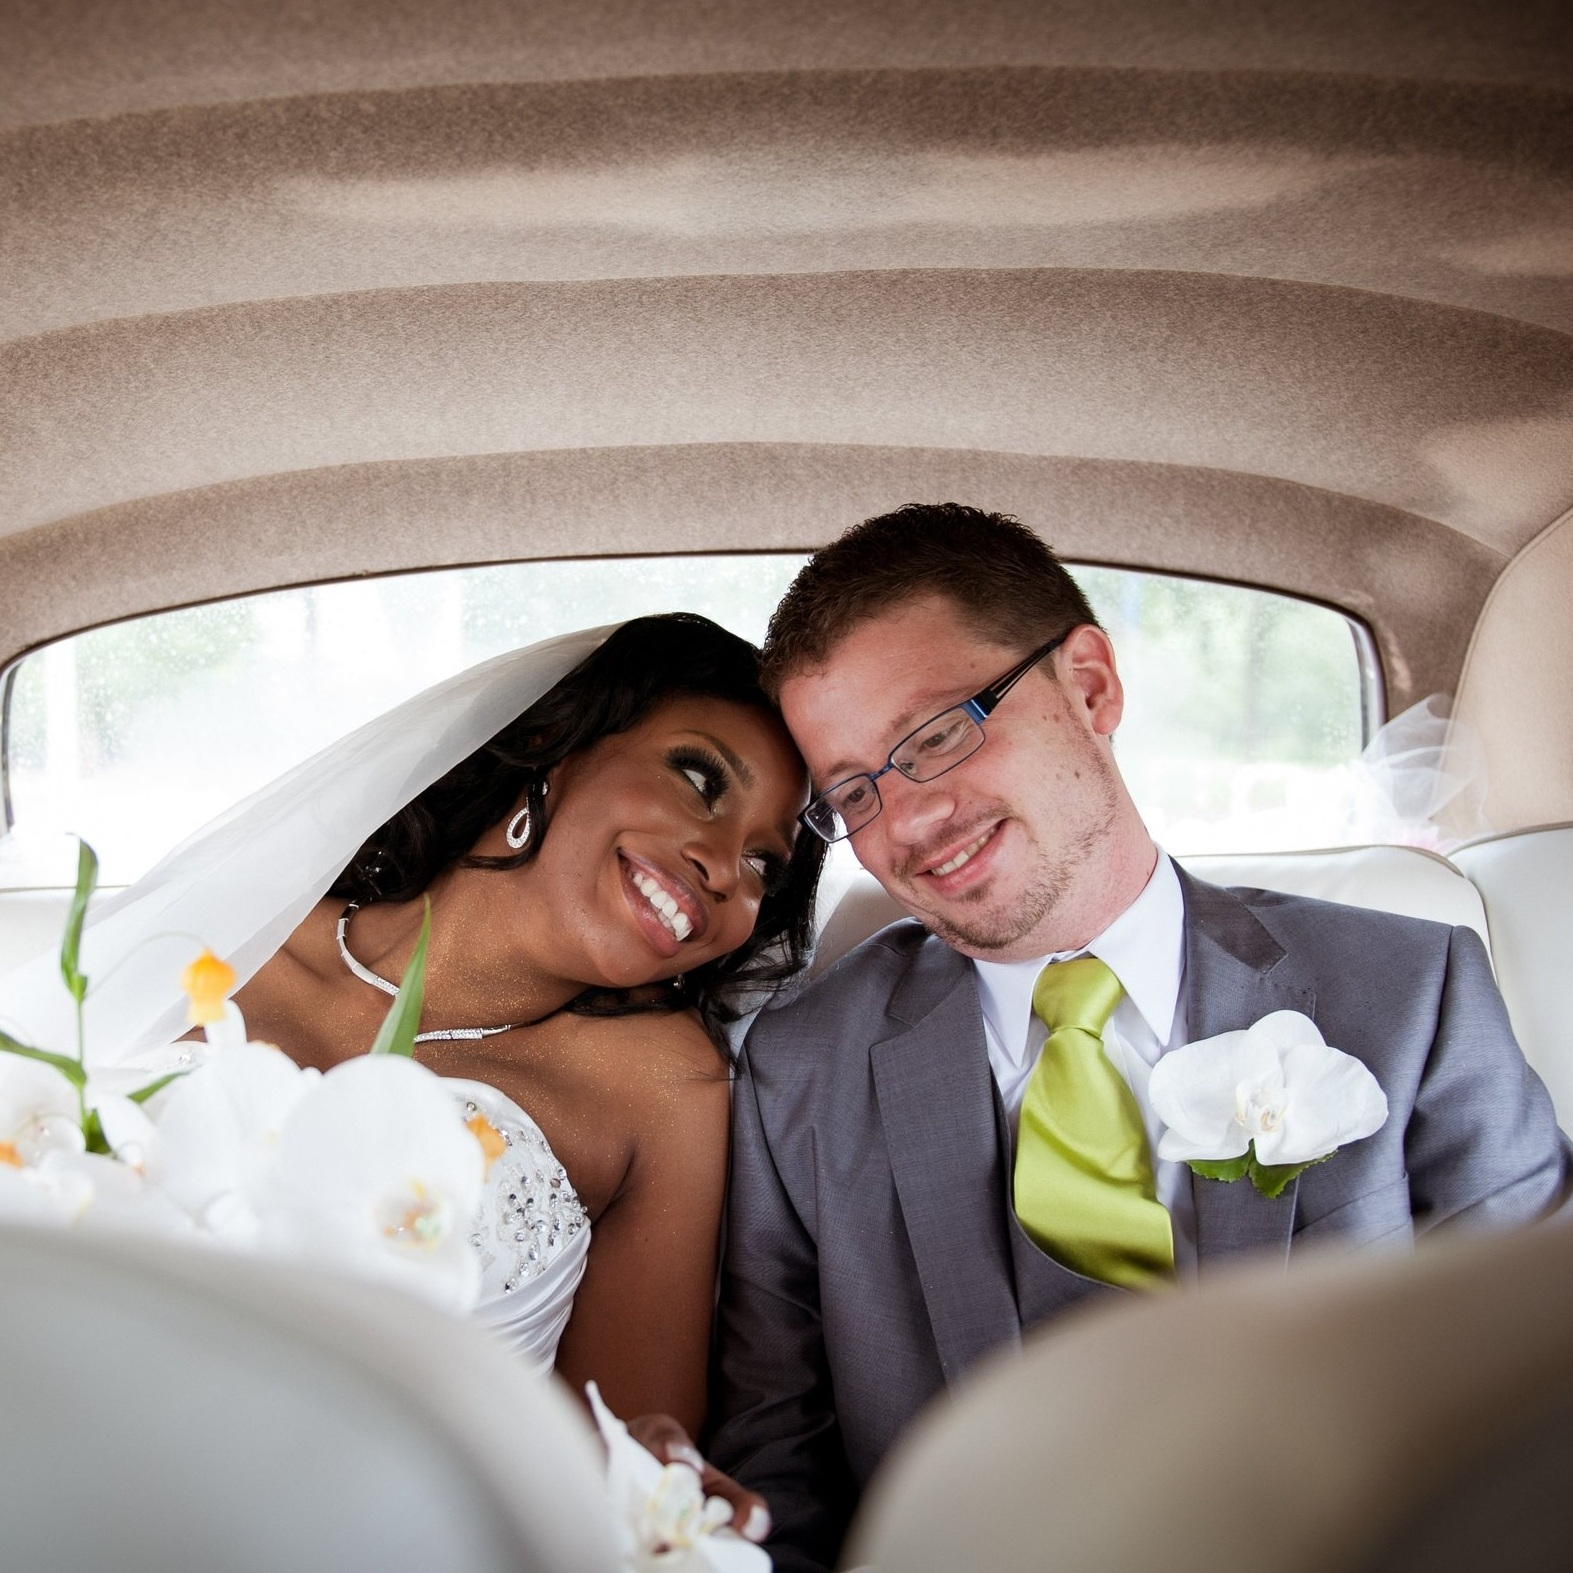 Couple+in+car.jpg